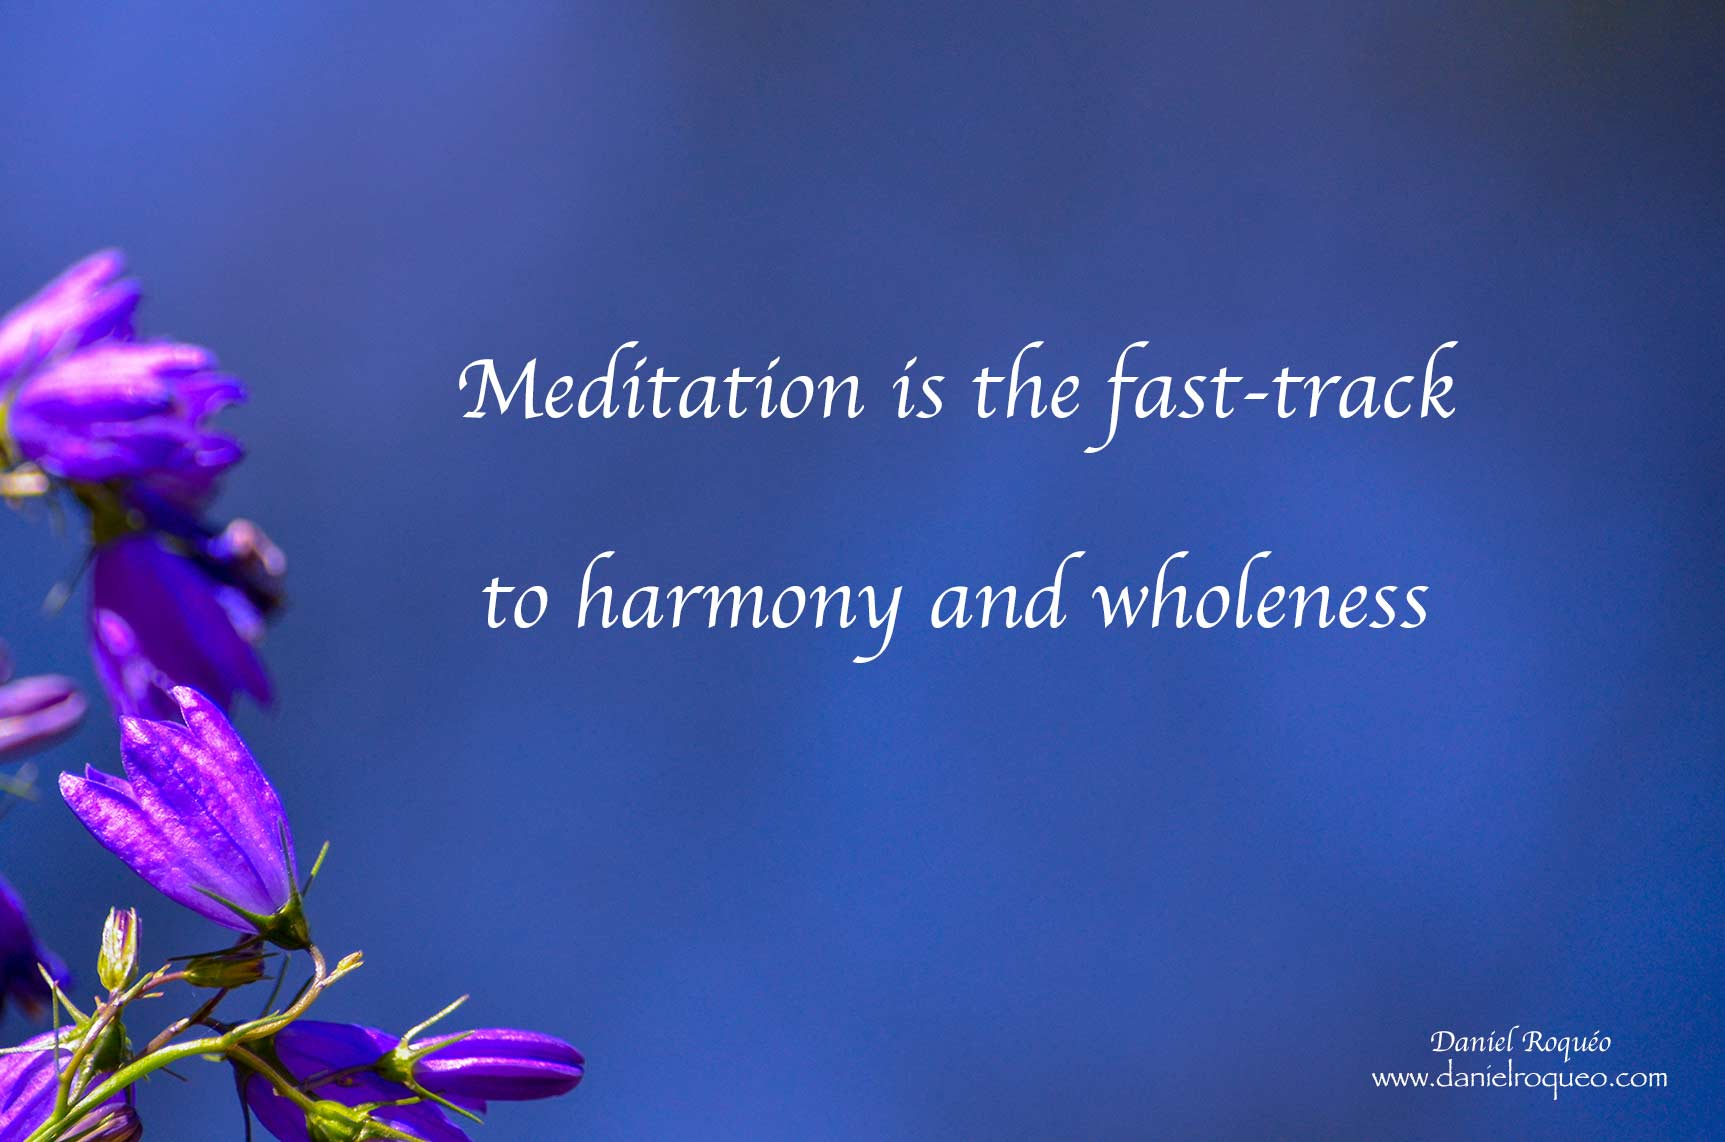 guided meditations is a fast track to inner peace and harmony